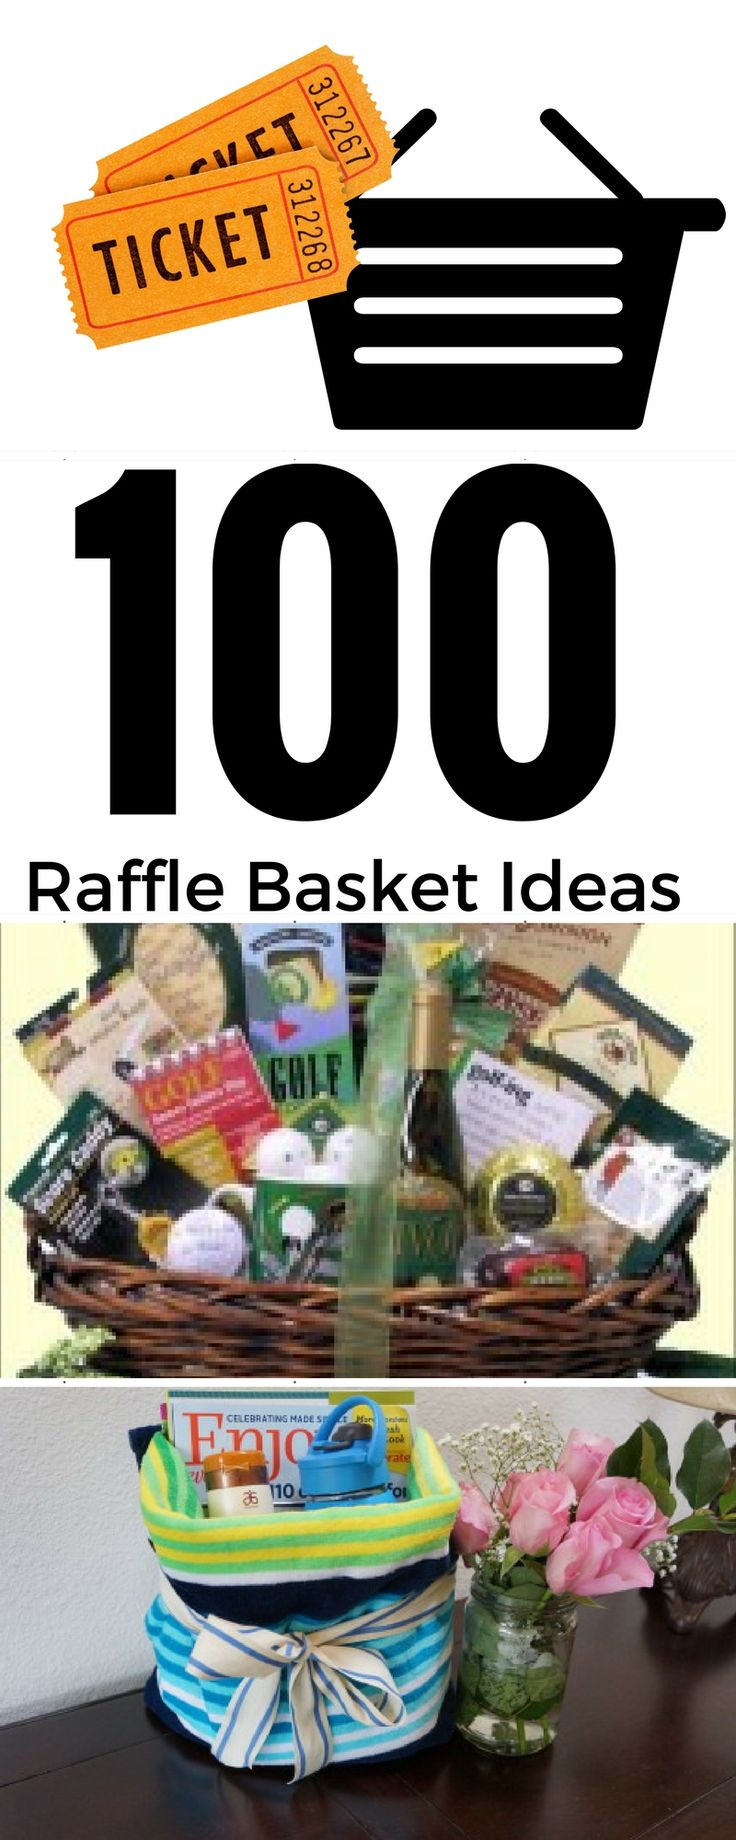 100 Fall Festival Raffle Basket Ideas - The Auction Basket List